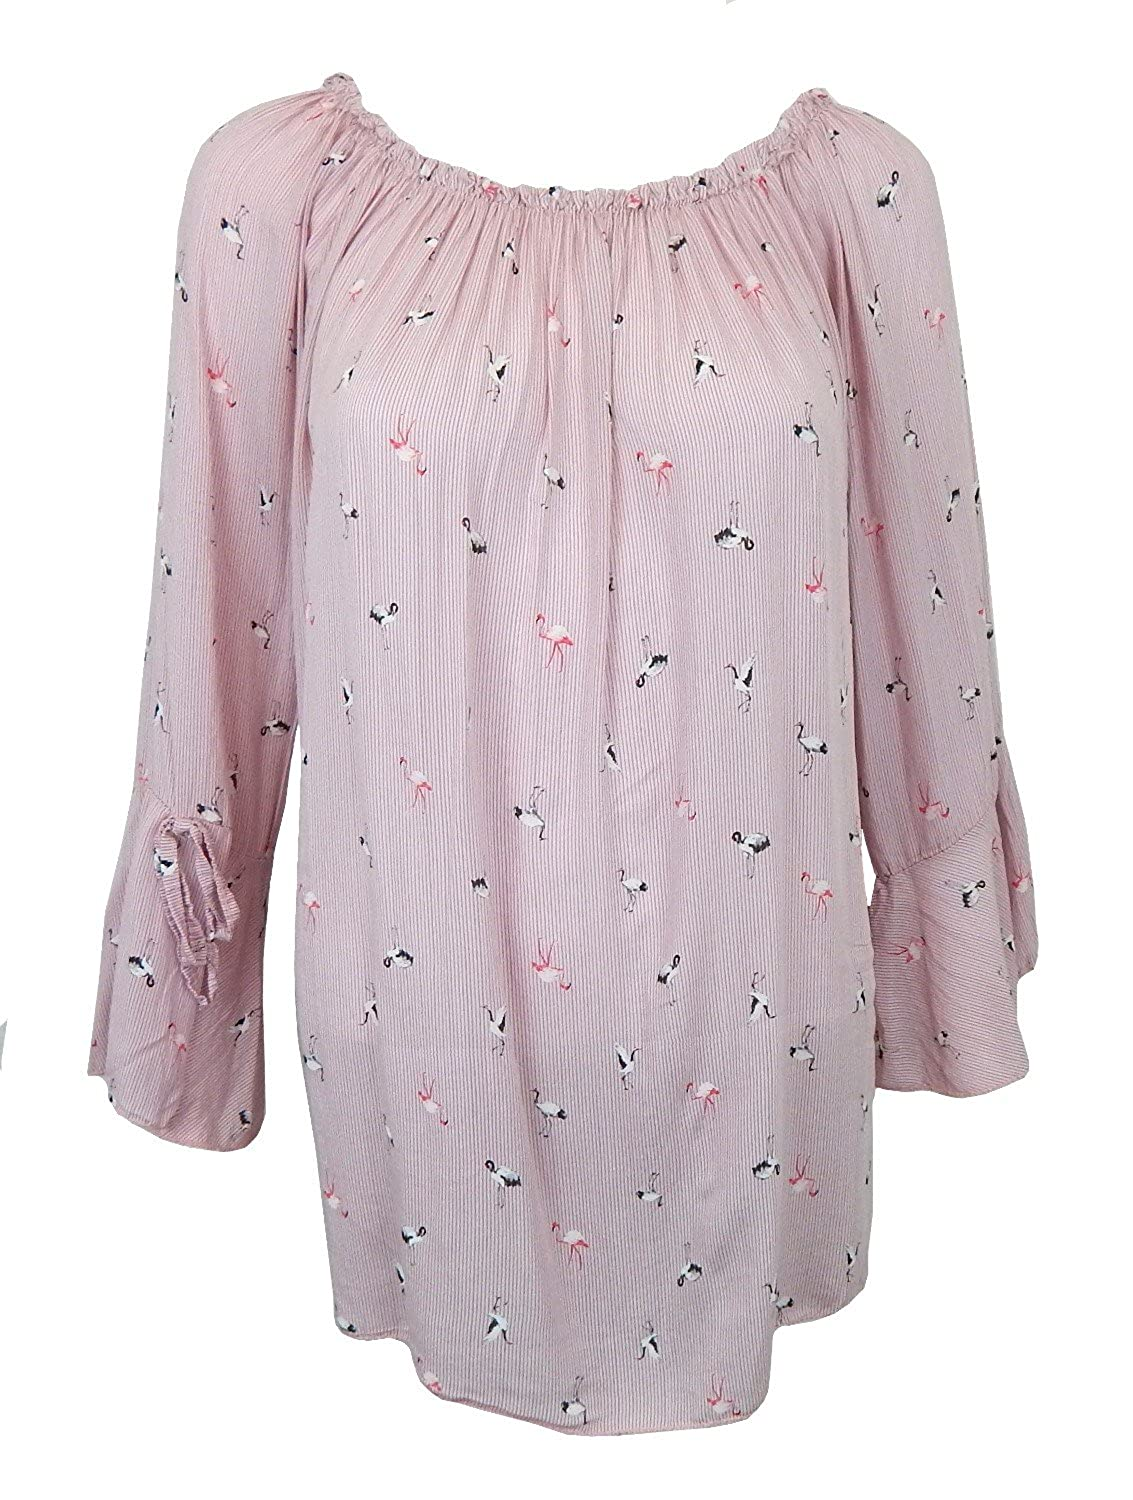 8fbf1cbf92c308 Bluse 38 40 42 S-M Flamingo Rosa Gestreift Made in Italy Volant Ärmel  Baumwolle Hot Sale